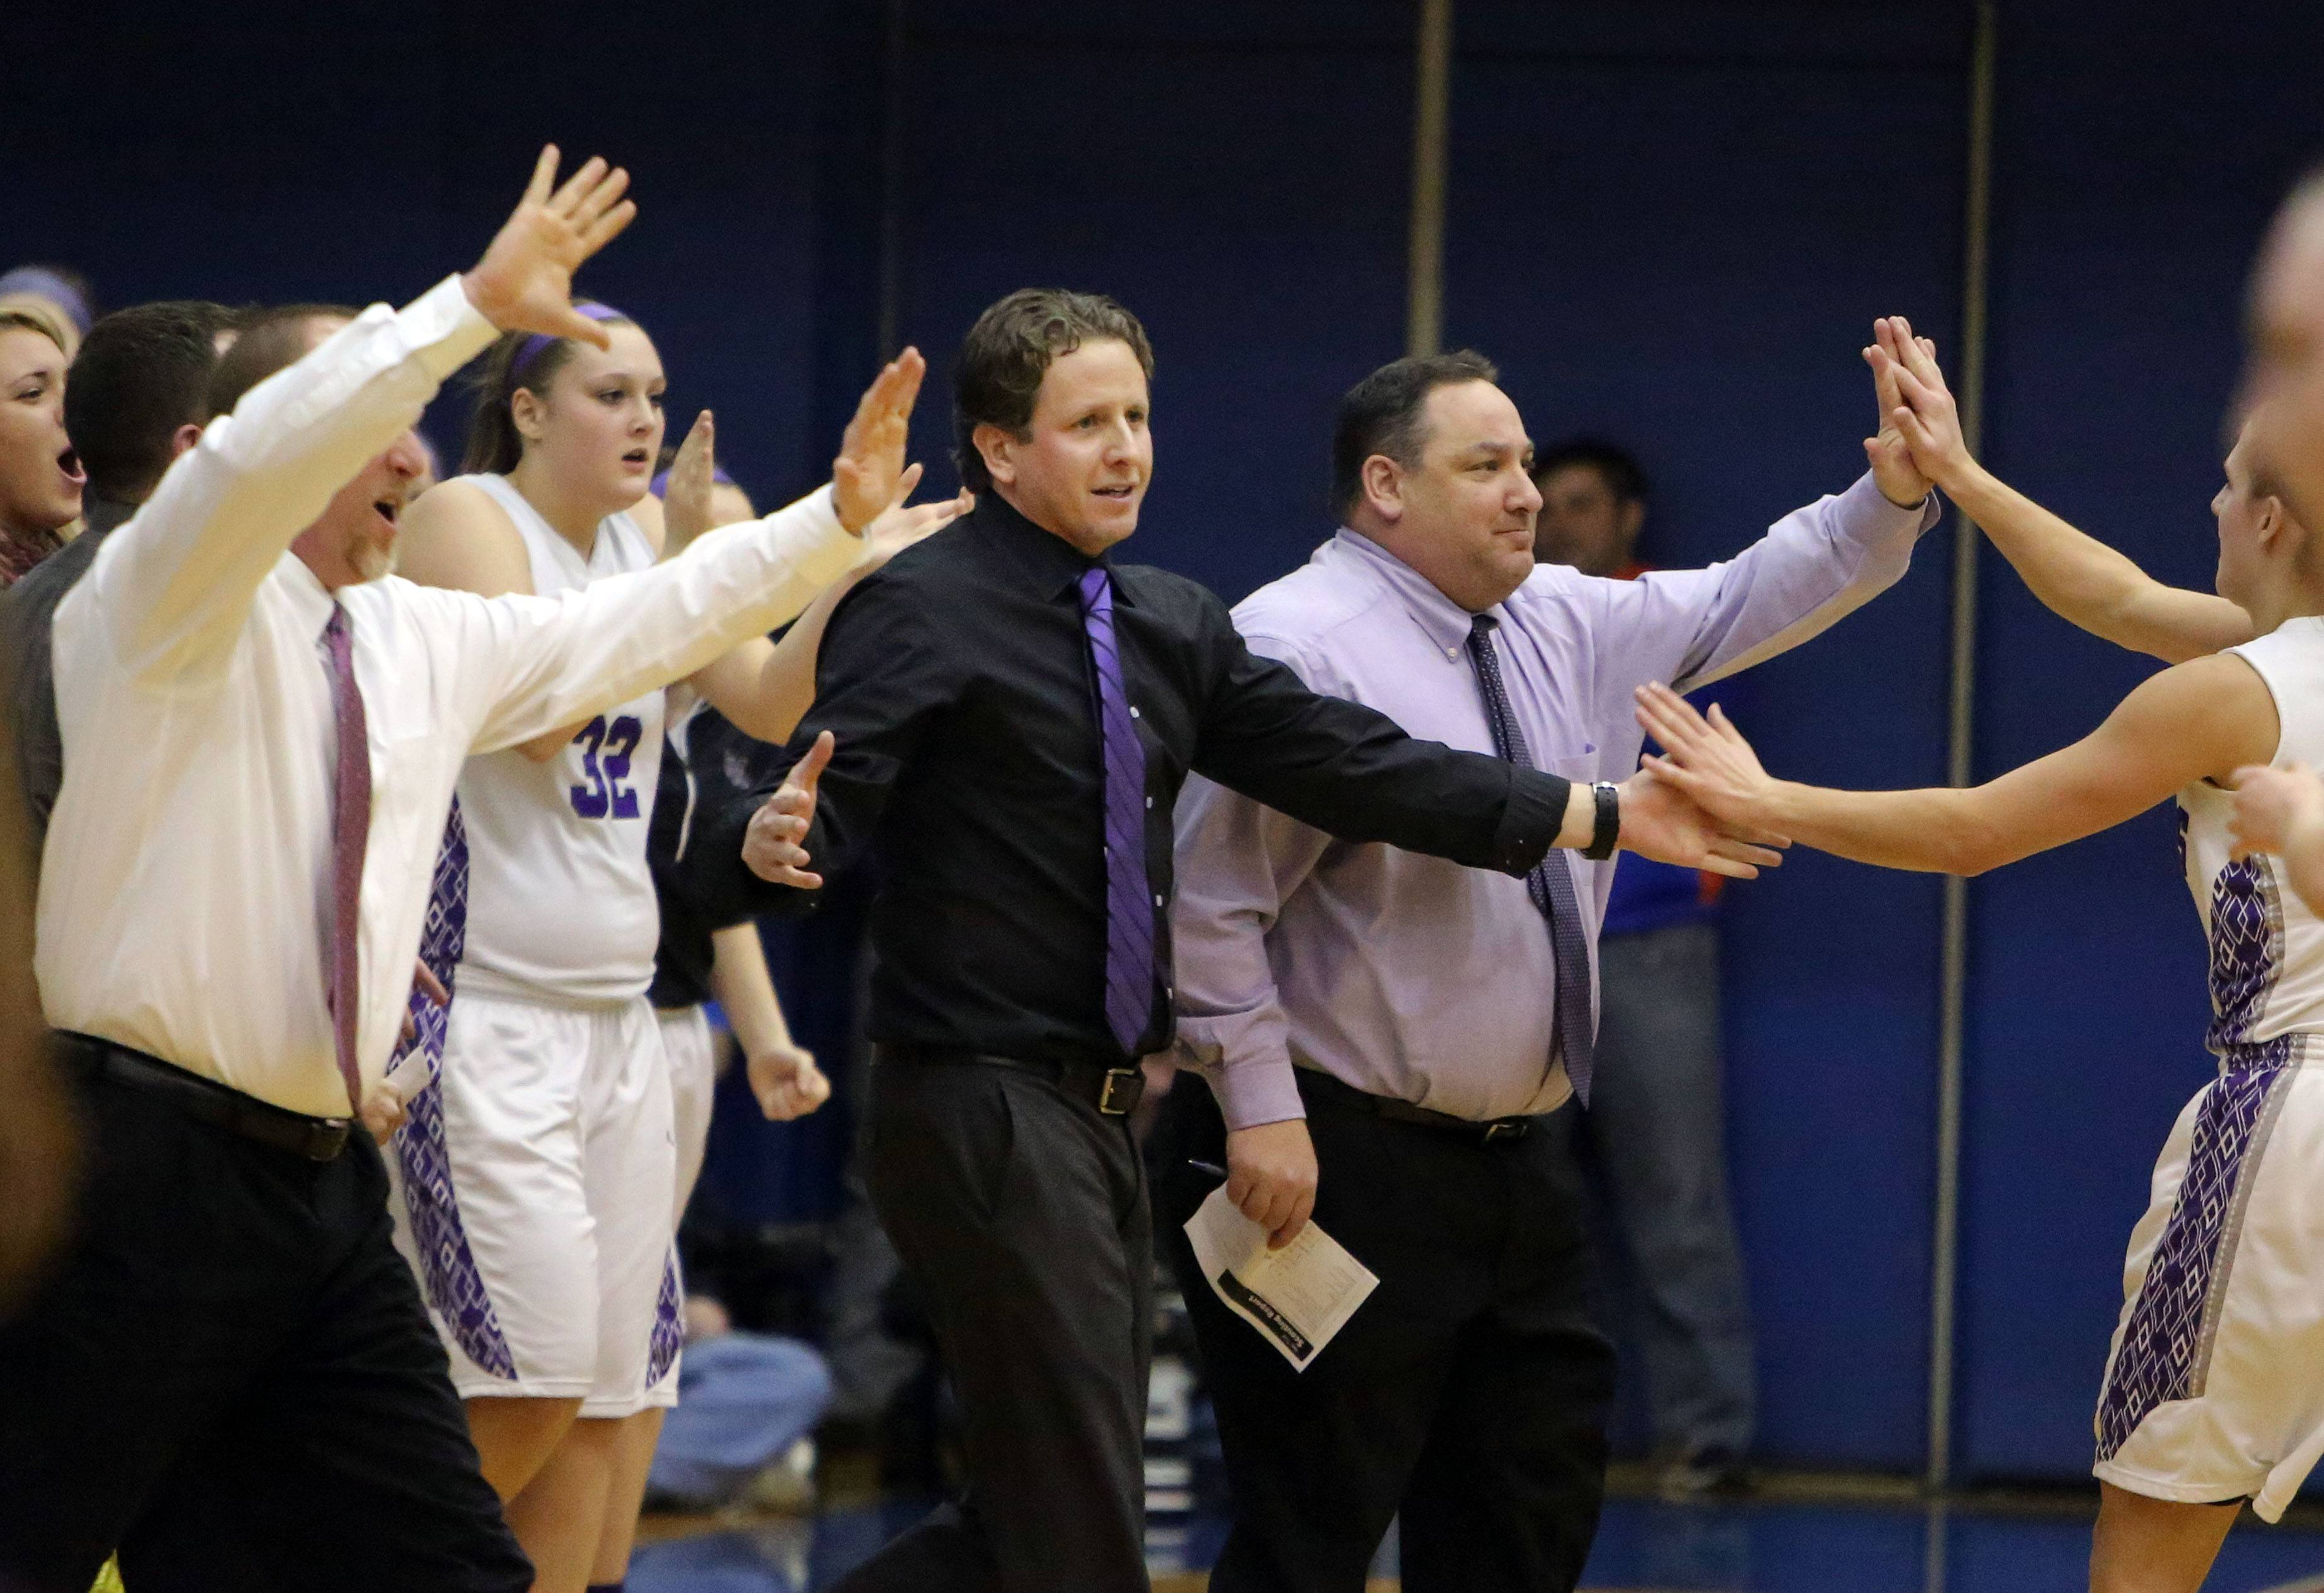 Rolling Meadows coach Ryan Kirkorsky encourages his team during the Class 4A supersectional against New Trier at Hoffman Estates on Monday. The Mustangs meet Geneva in Friday's 6:30 p.m. state semifinals.